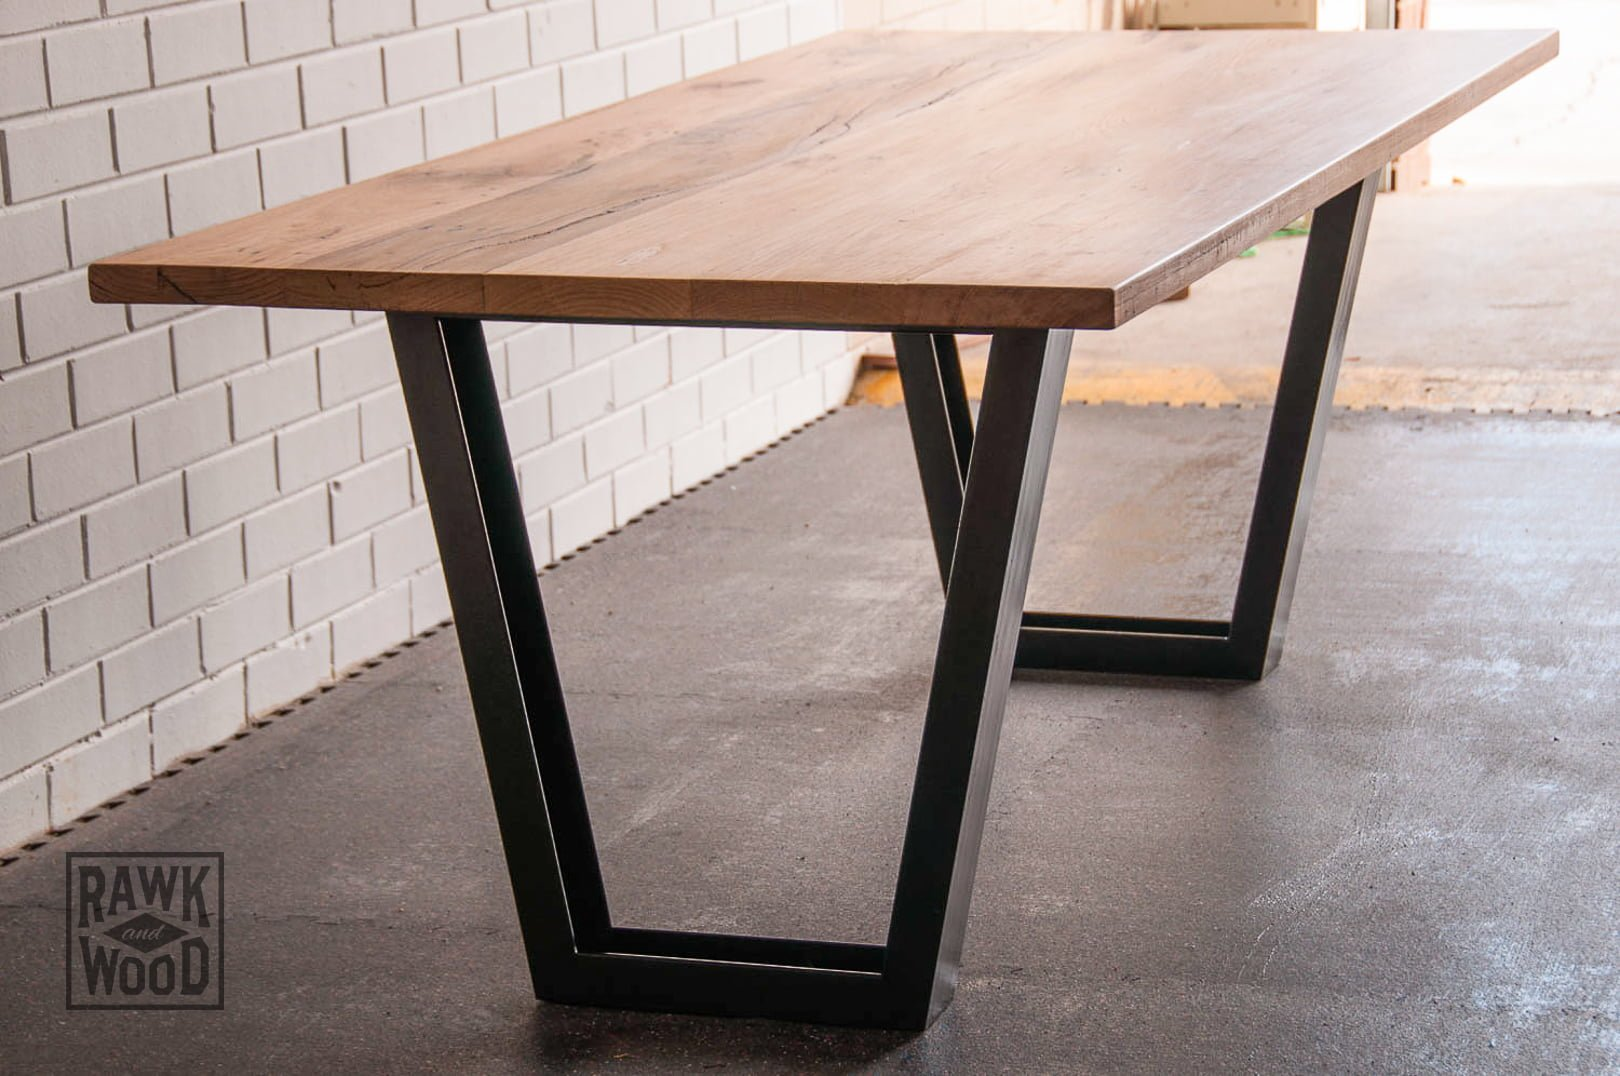 Timber Dining Table Rawk And Wood